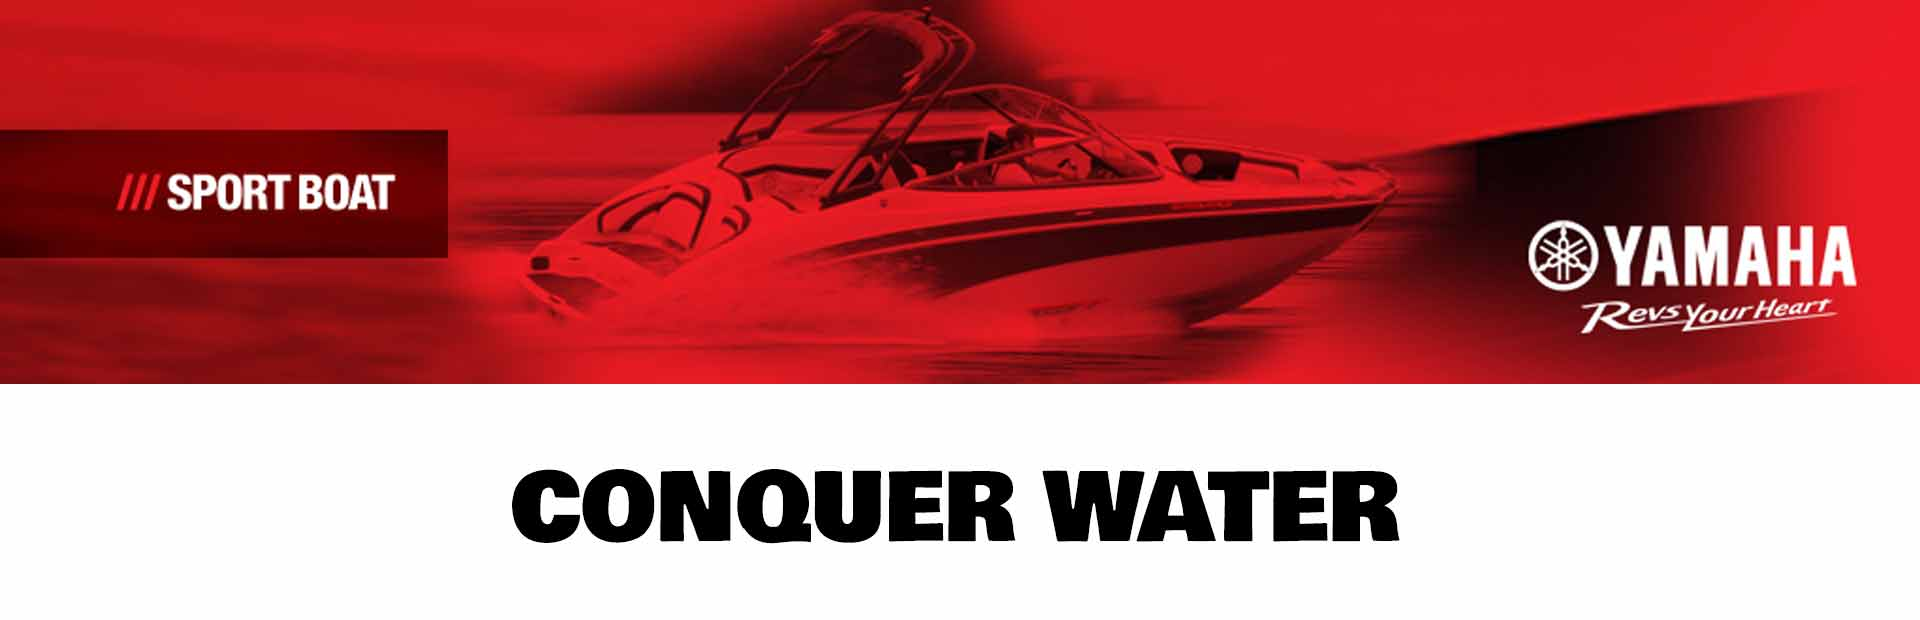 Yamaha: Conquer Water (Sportboat)